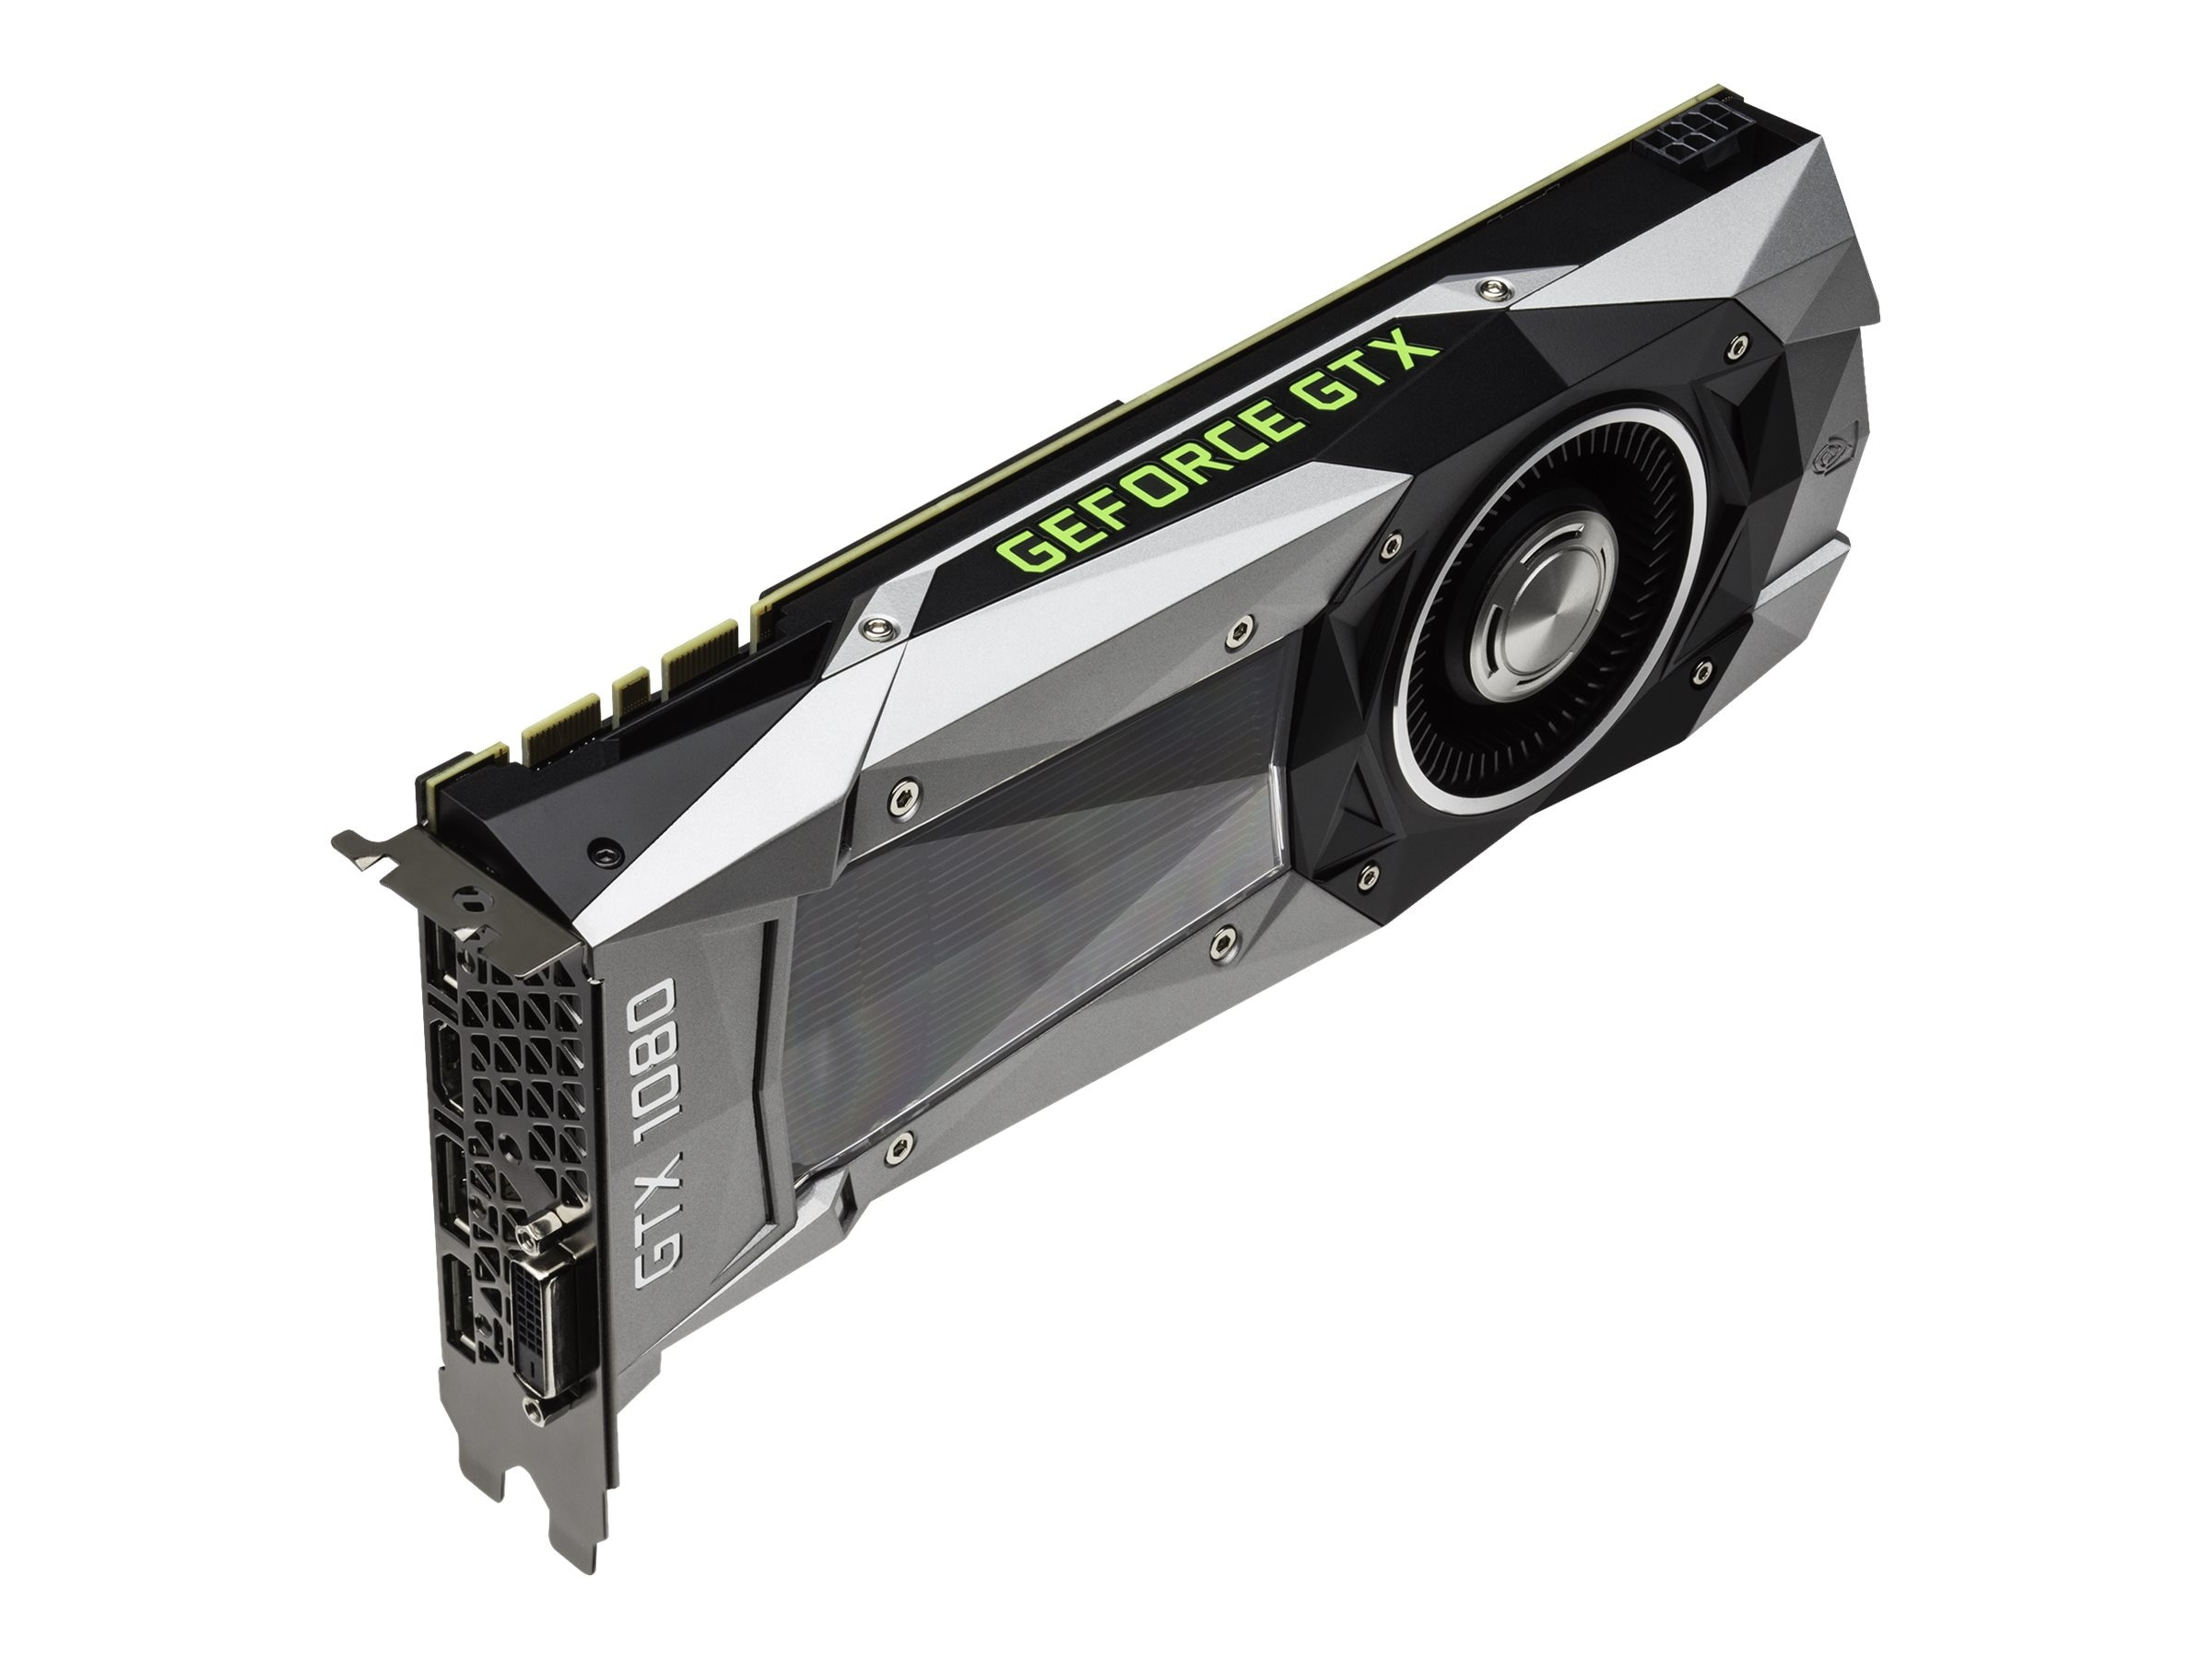 PNY GeForce GTX 1080 PCIe 3.0 x16 Founders Edition Graphics Card, 8GB GDDR5X